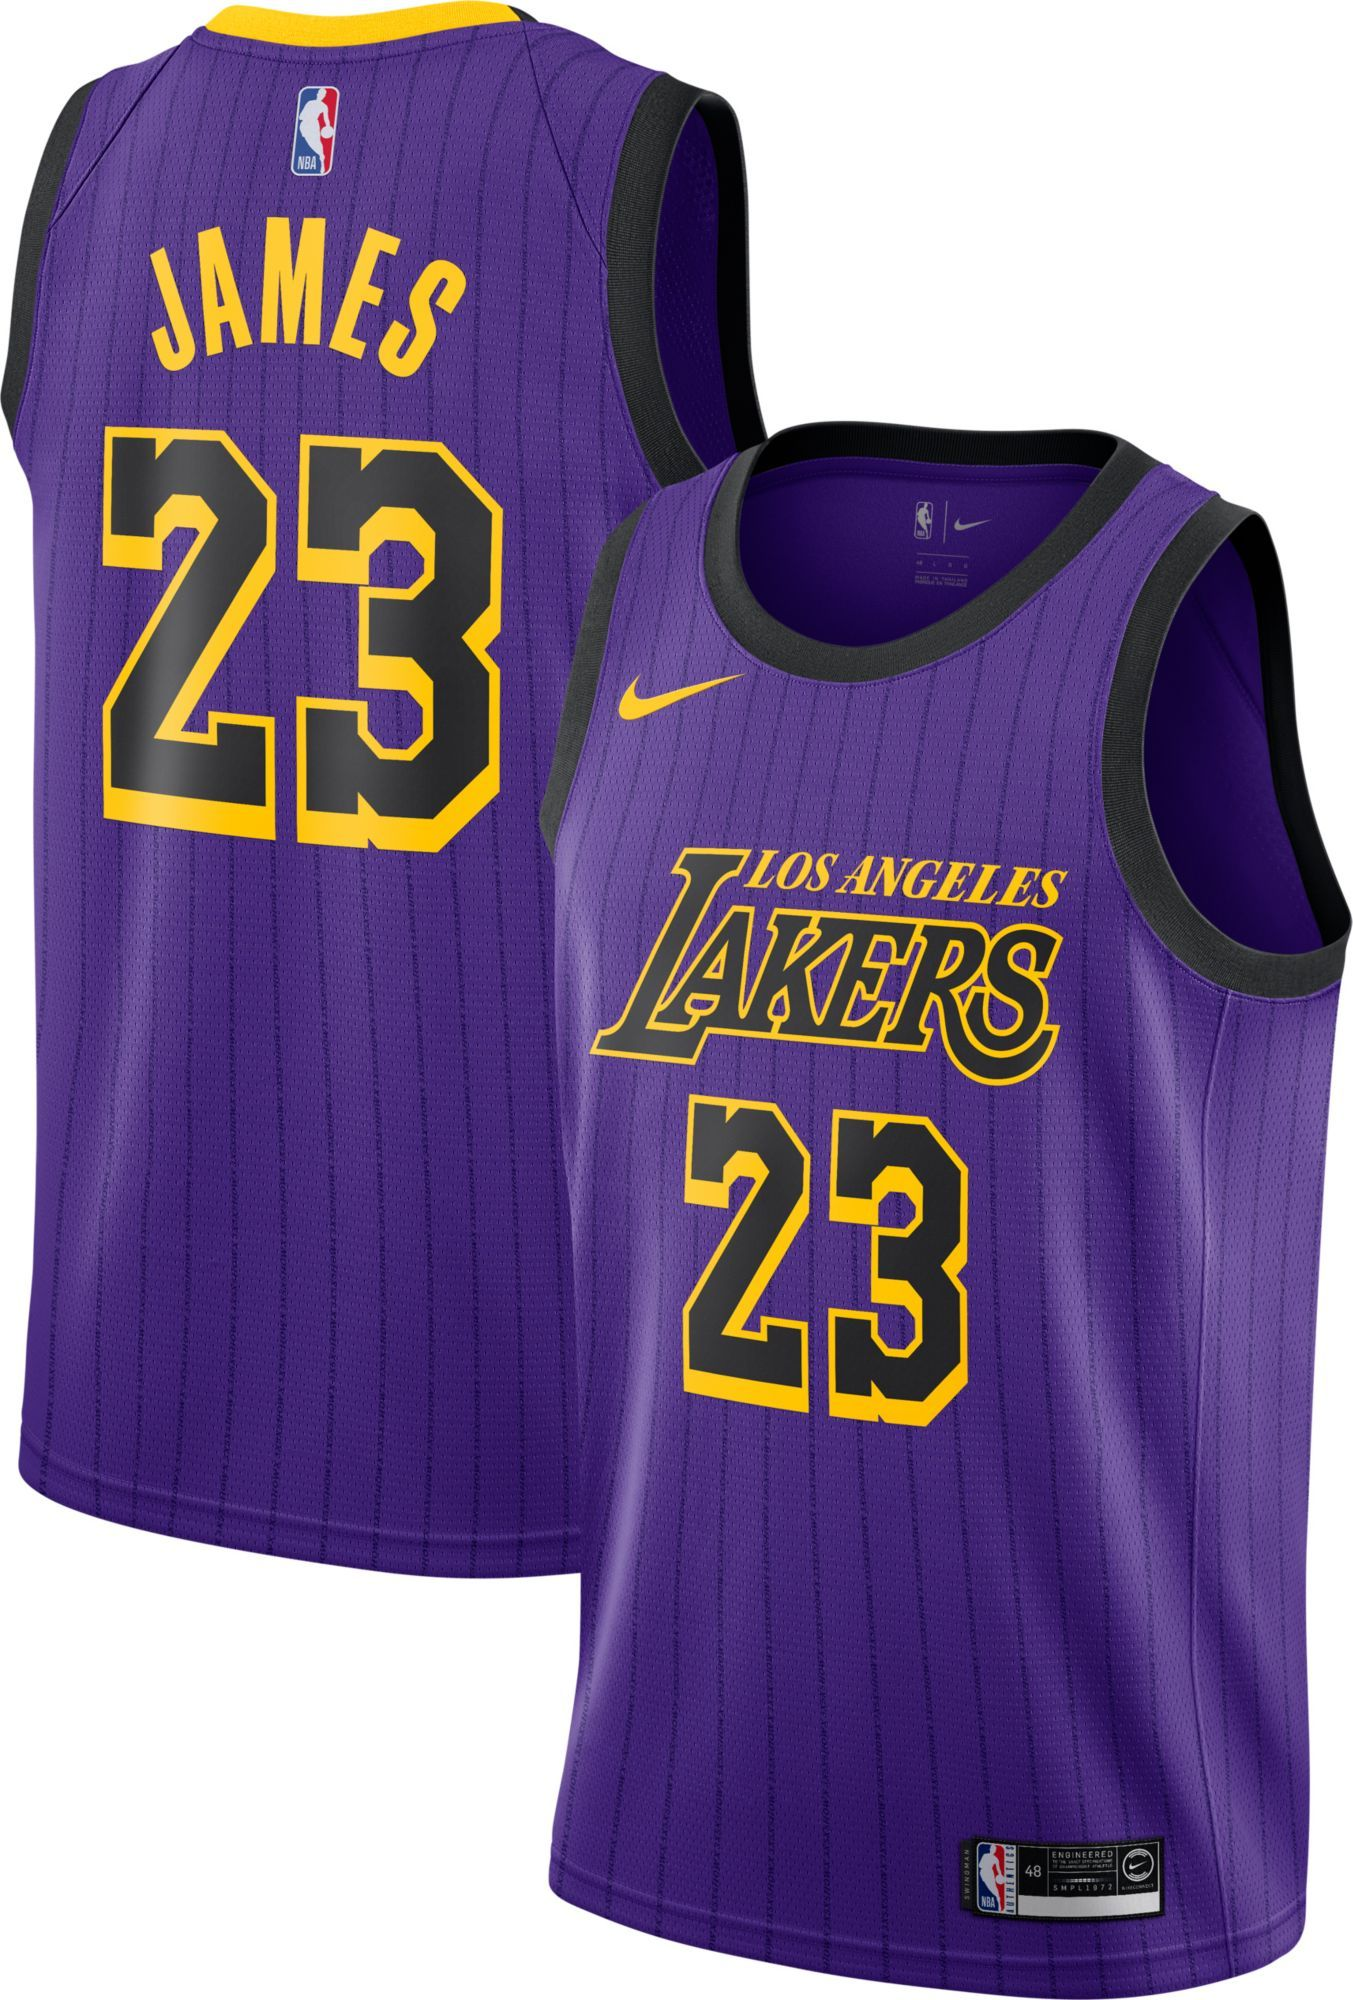 ce1c1ec49 Nike Men s Los Angeles Lakers LeBron James Dri-FIT City Edition Swingman  Jersey